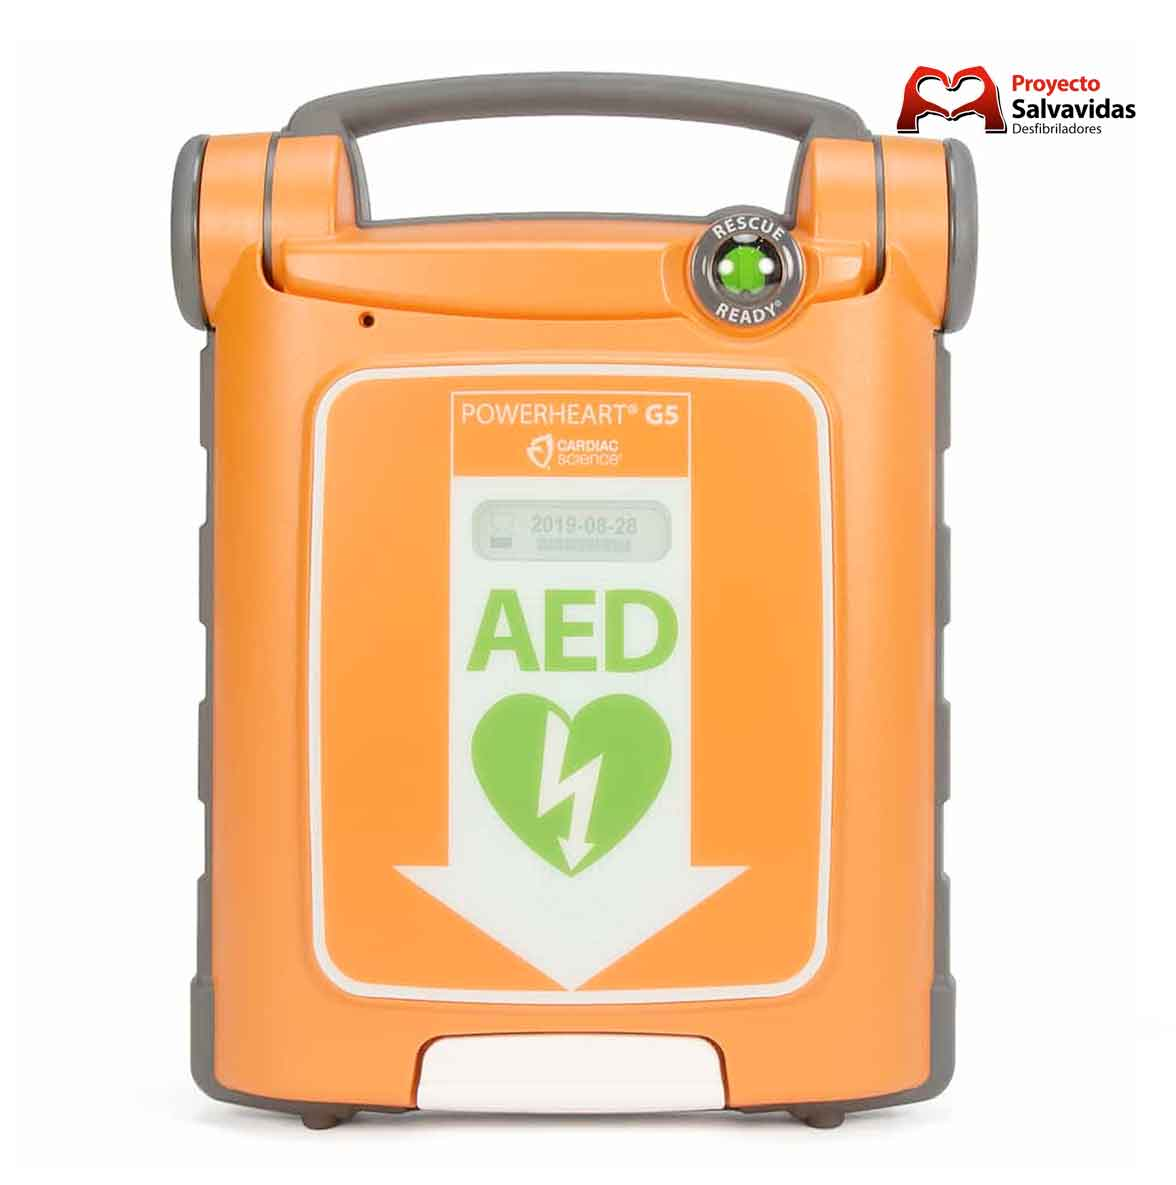 Desfibrilador de venda / arrendamento Cardiac Science Powerheart G5